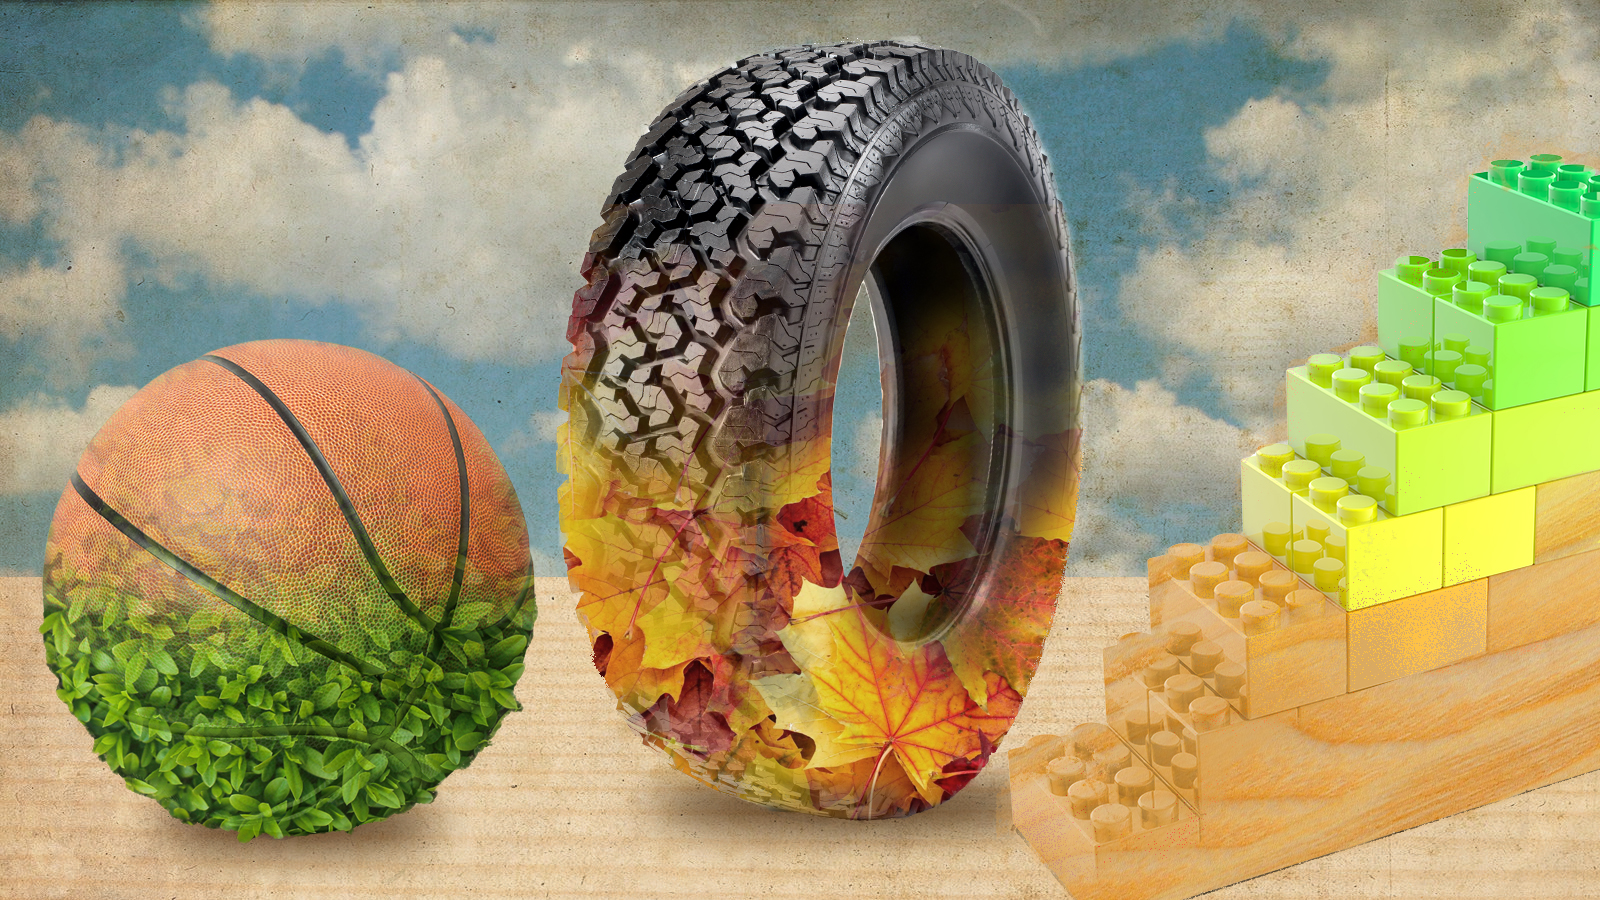 A new method of creating renewable butadiene will lead to an even bigger advancement - sustainable rubber and plastics.